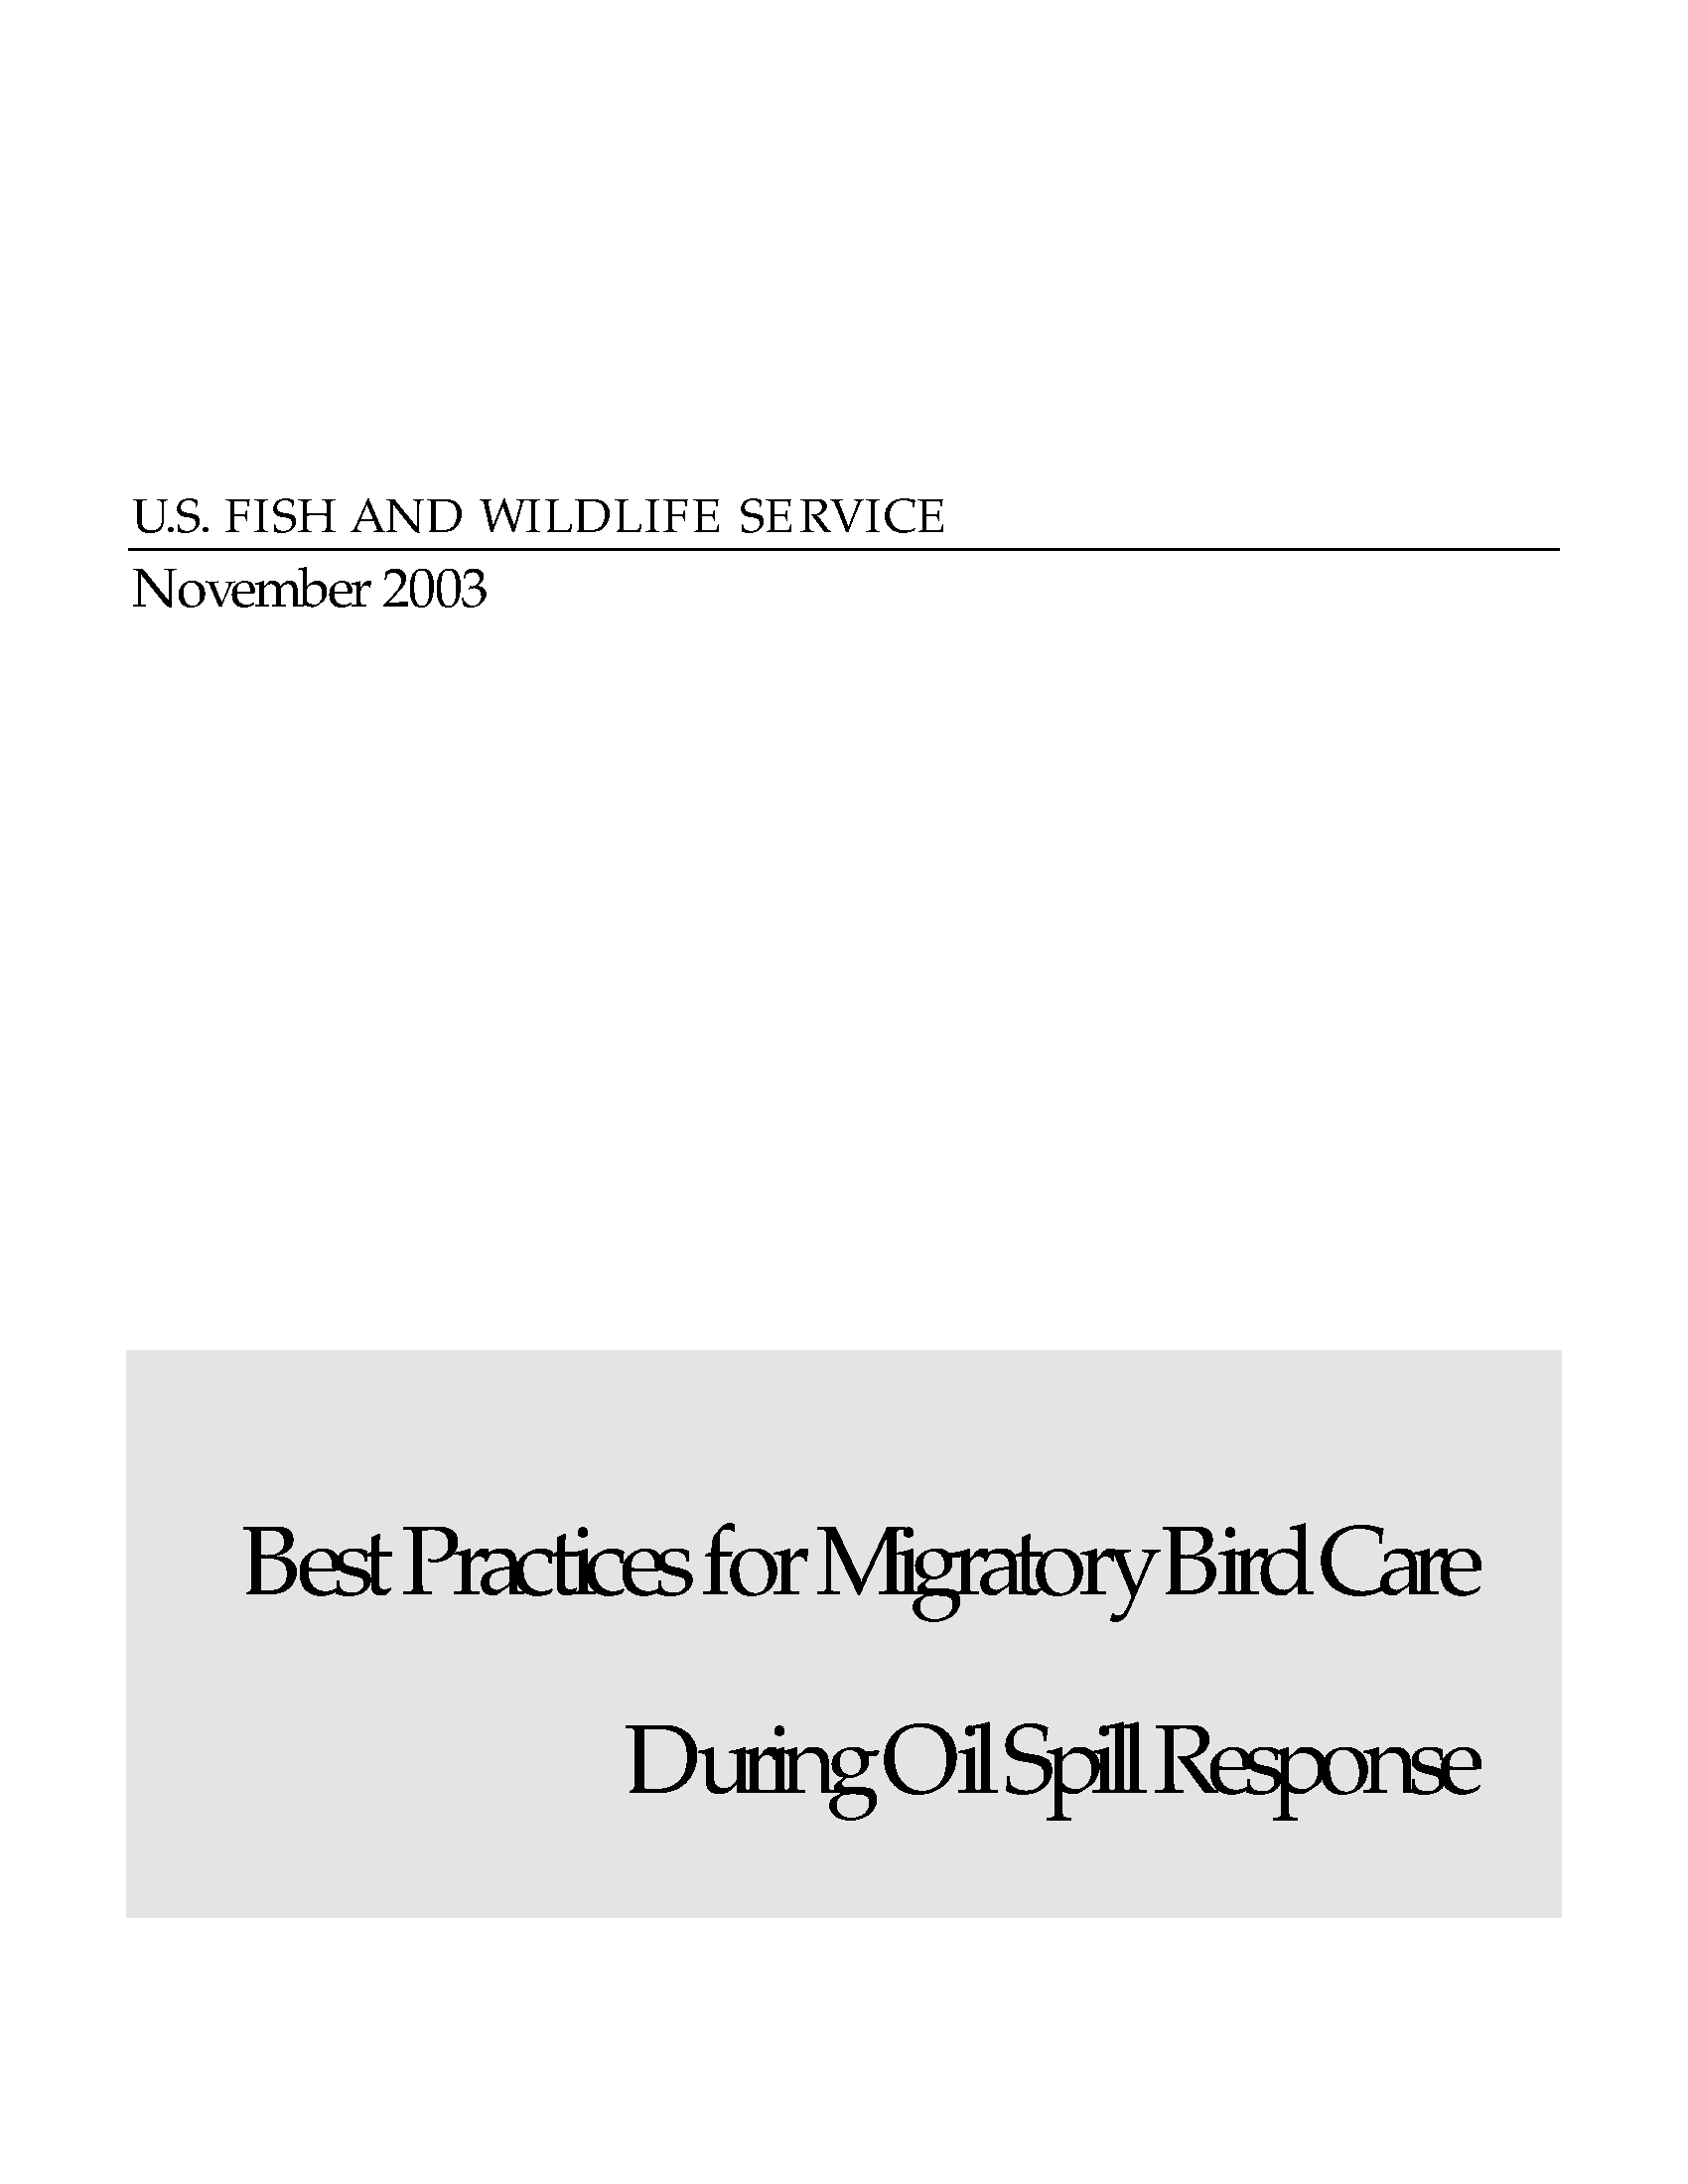 Refractometer Calculator Spreadsheet Pertaining To Best Practices For Migratory Bird Care During Oil Spill Response